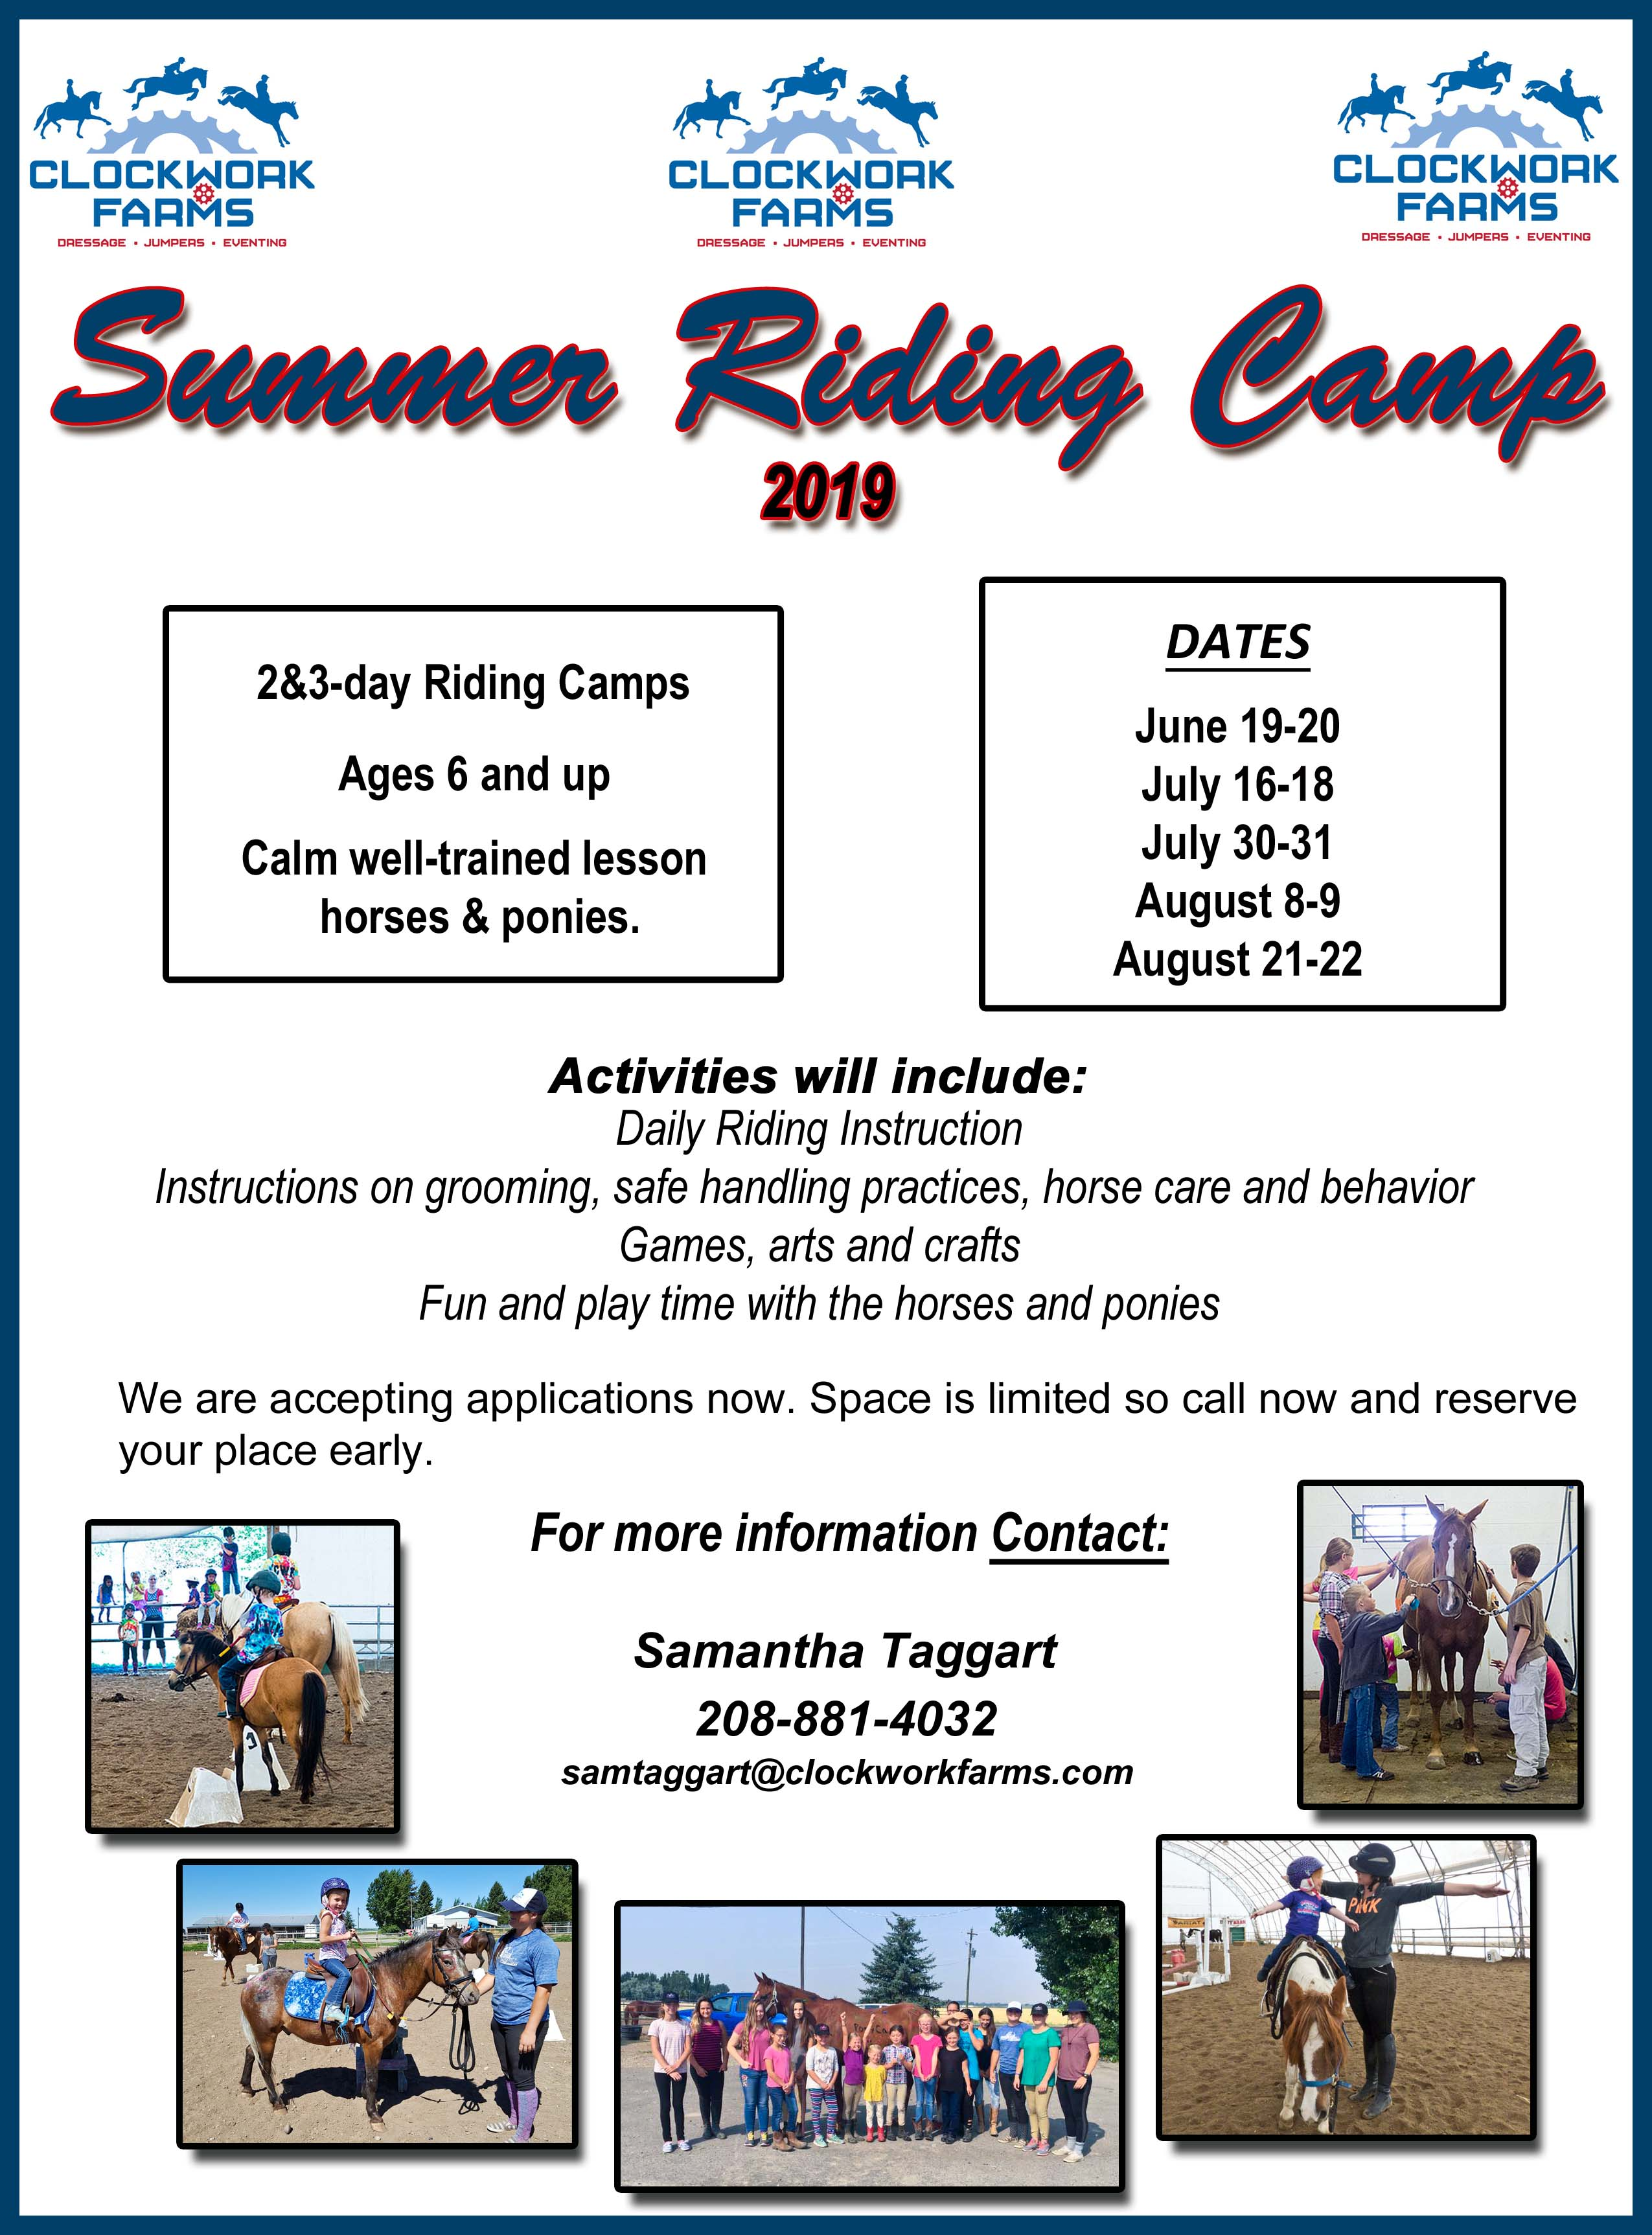 Summer Riding Camp – Welcome to Clockwork Farms